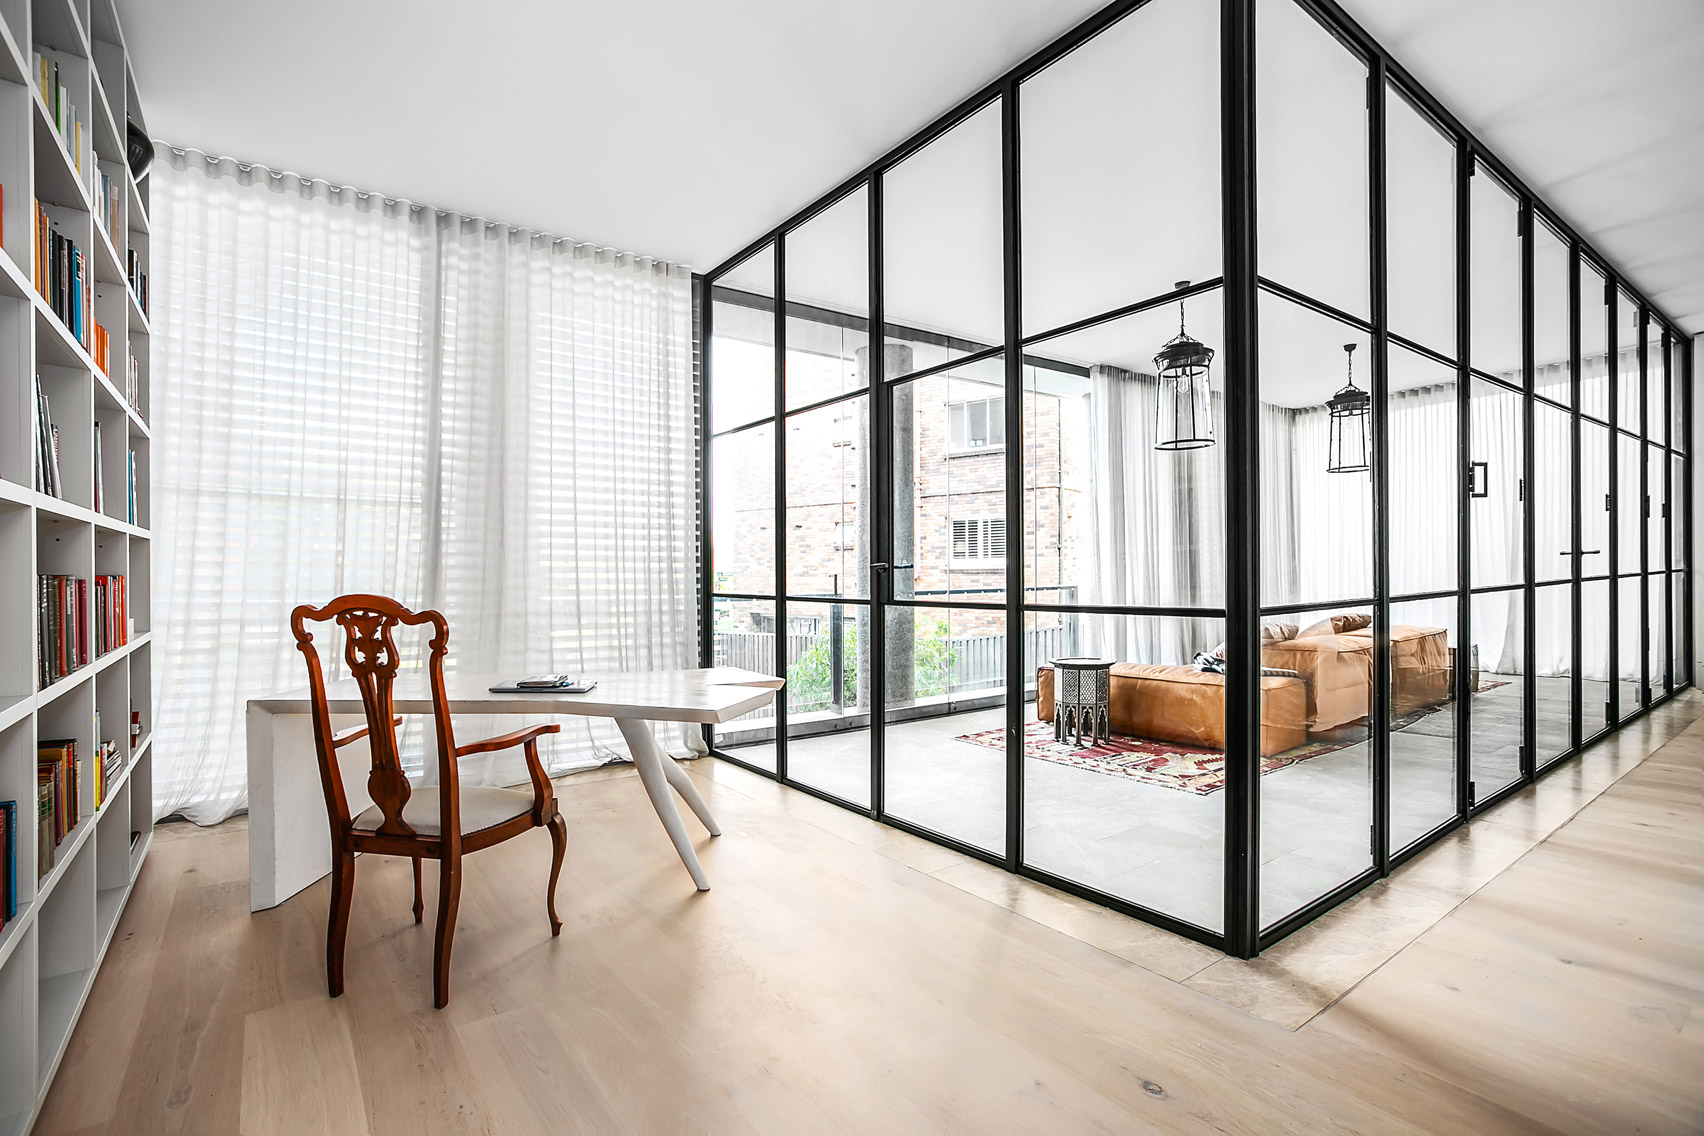 Steel and glass room within a room